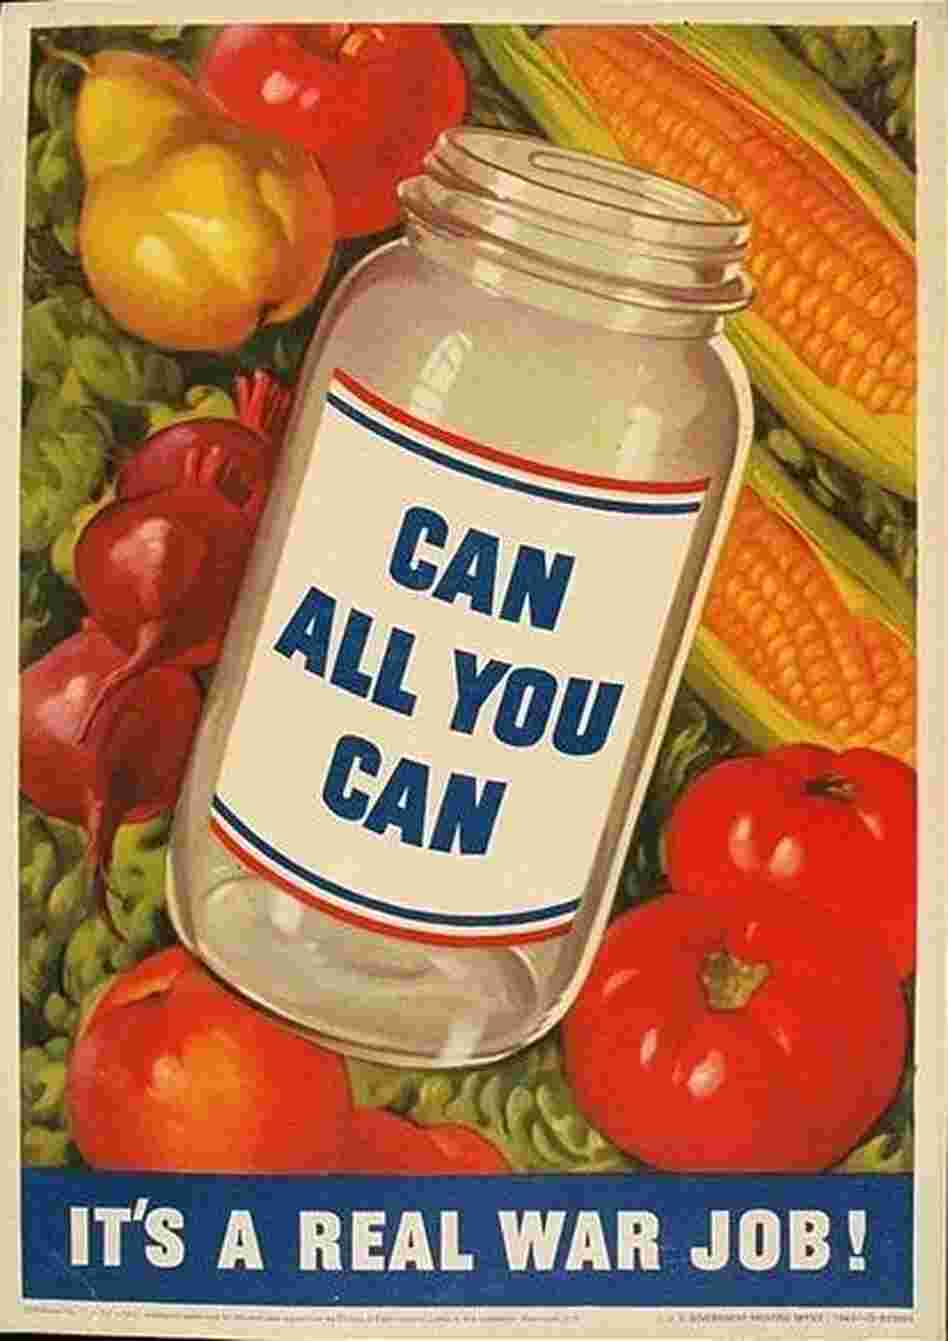 During World War II, the government used posters to encourage Americans to grow and preserve their own foods as a way to aid the war effort. Produced by the Office of War Information in 1943.